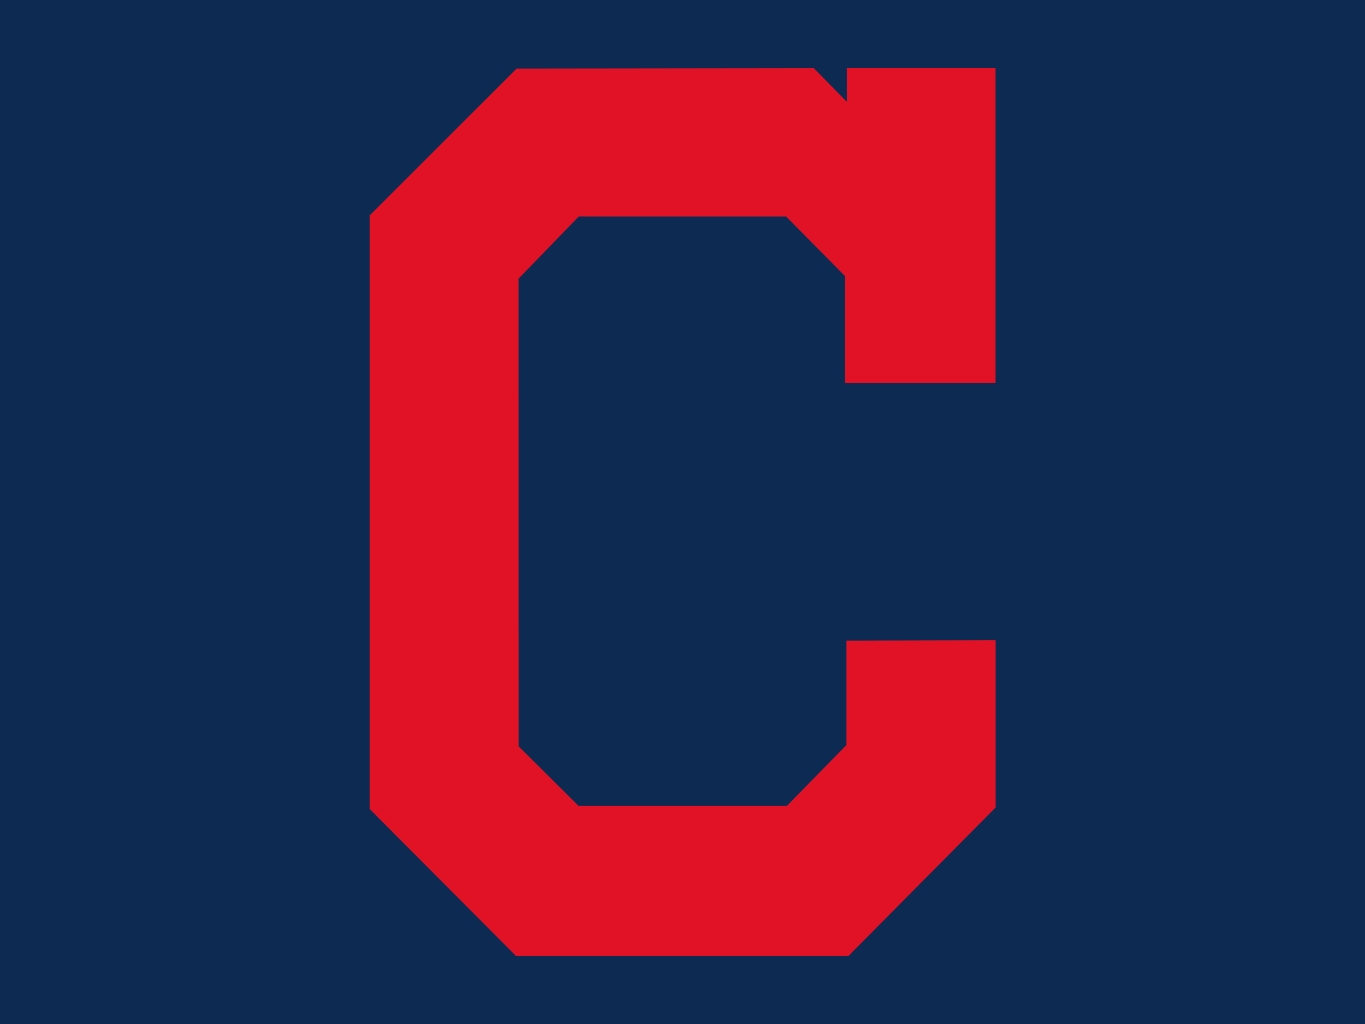 1365x1024 - Cleveland Indians Wallpapers 22